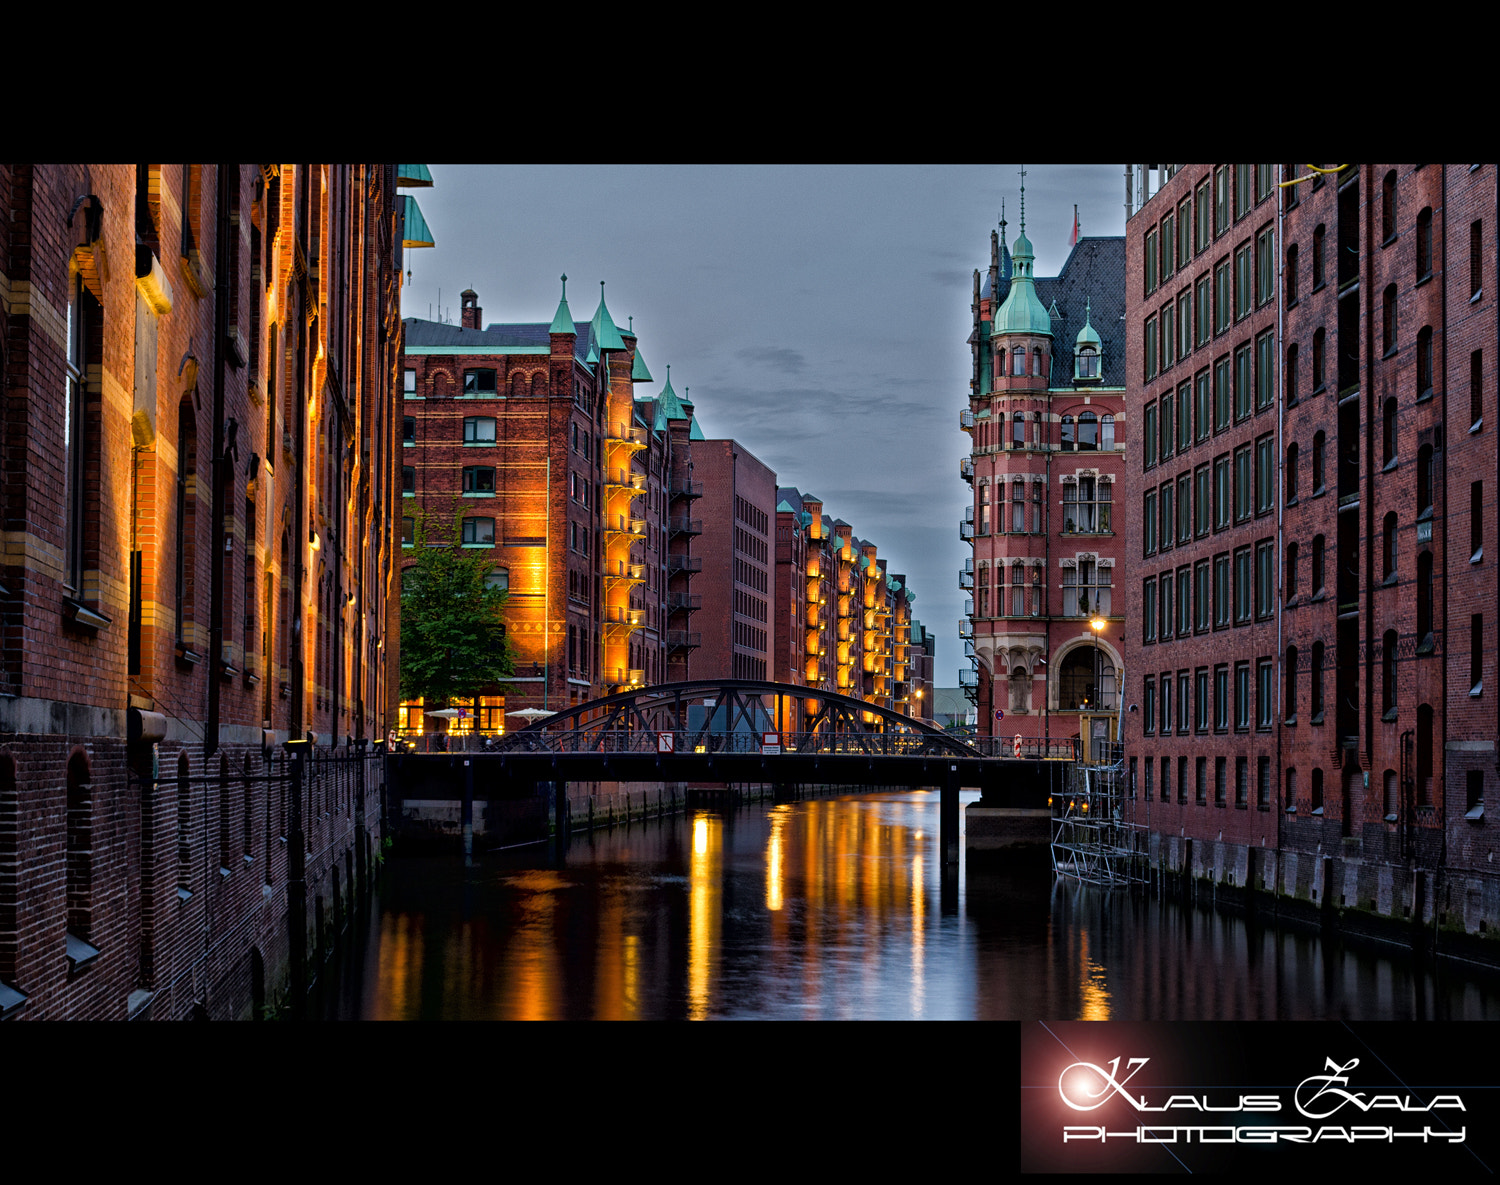 Photograph ... Speicherstadt/Hamburg by klausZ - Photography on 500px